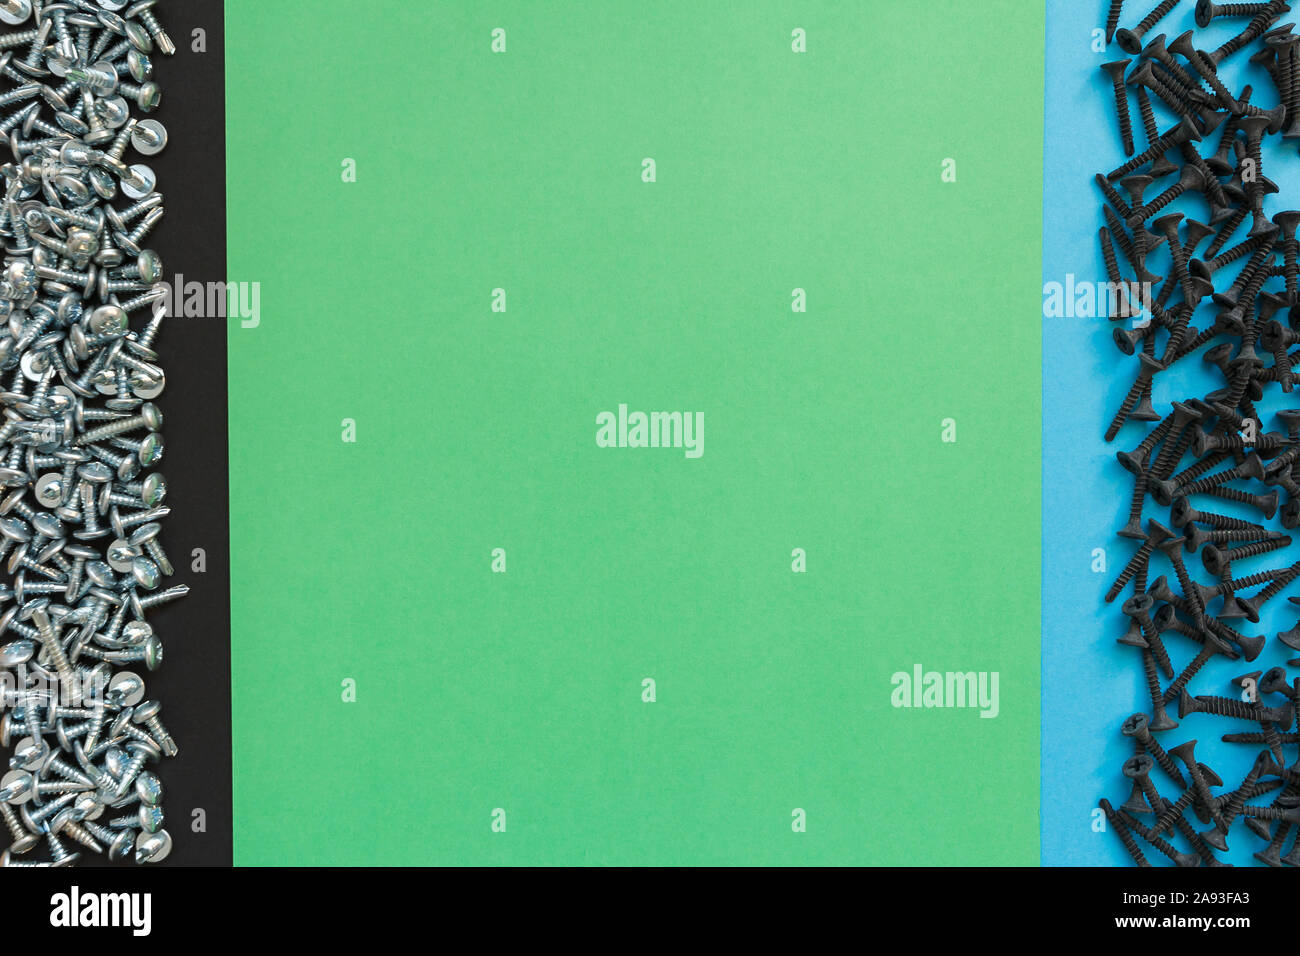 Flat Lay Composition With Different Screws on Black, Green and Blue Background. Top View of Checklist Concept Stock Photo